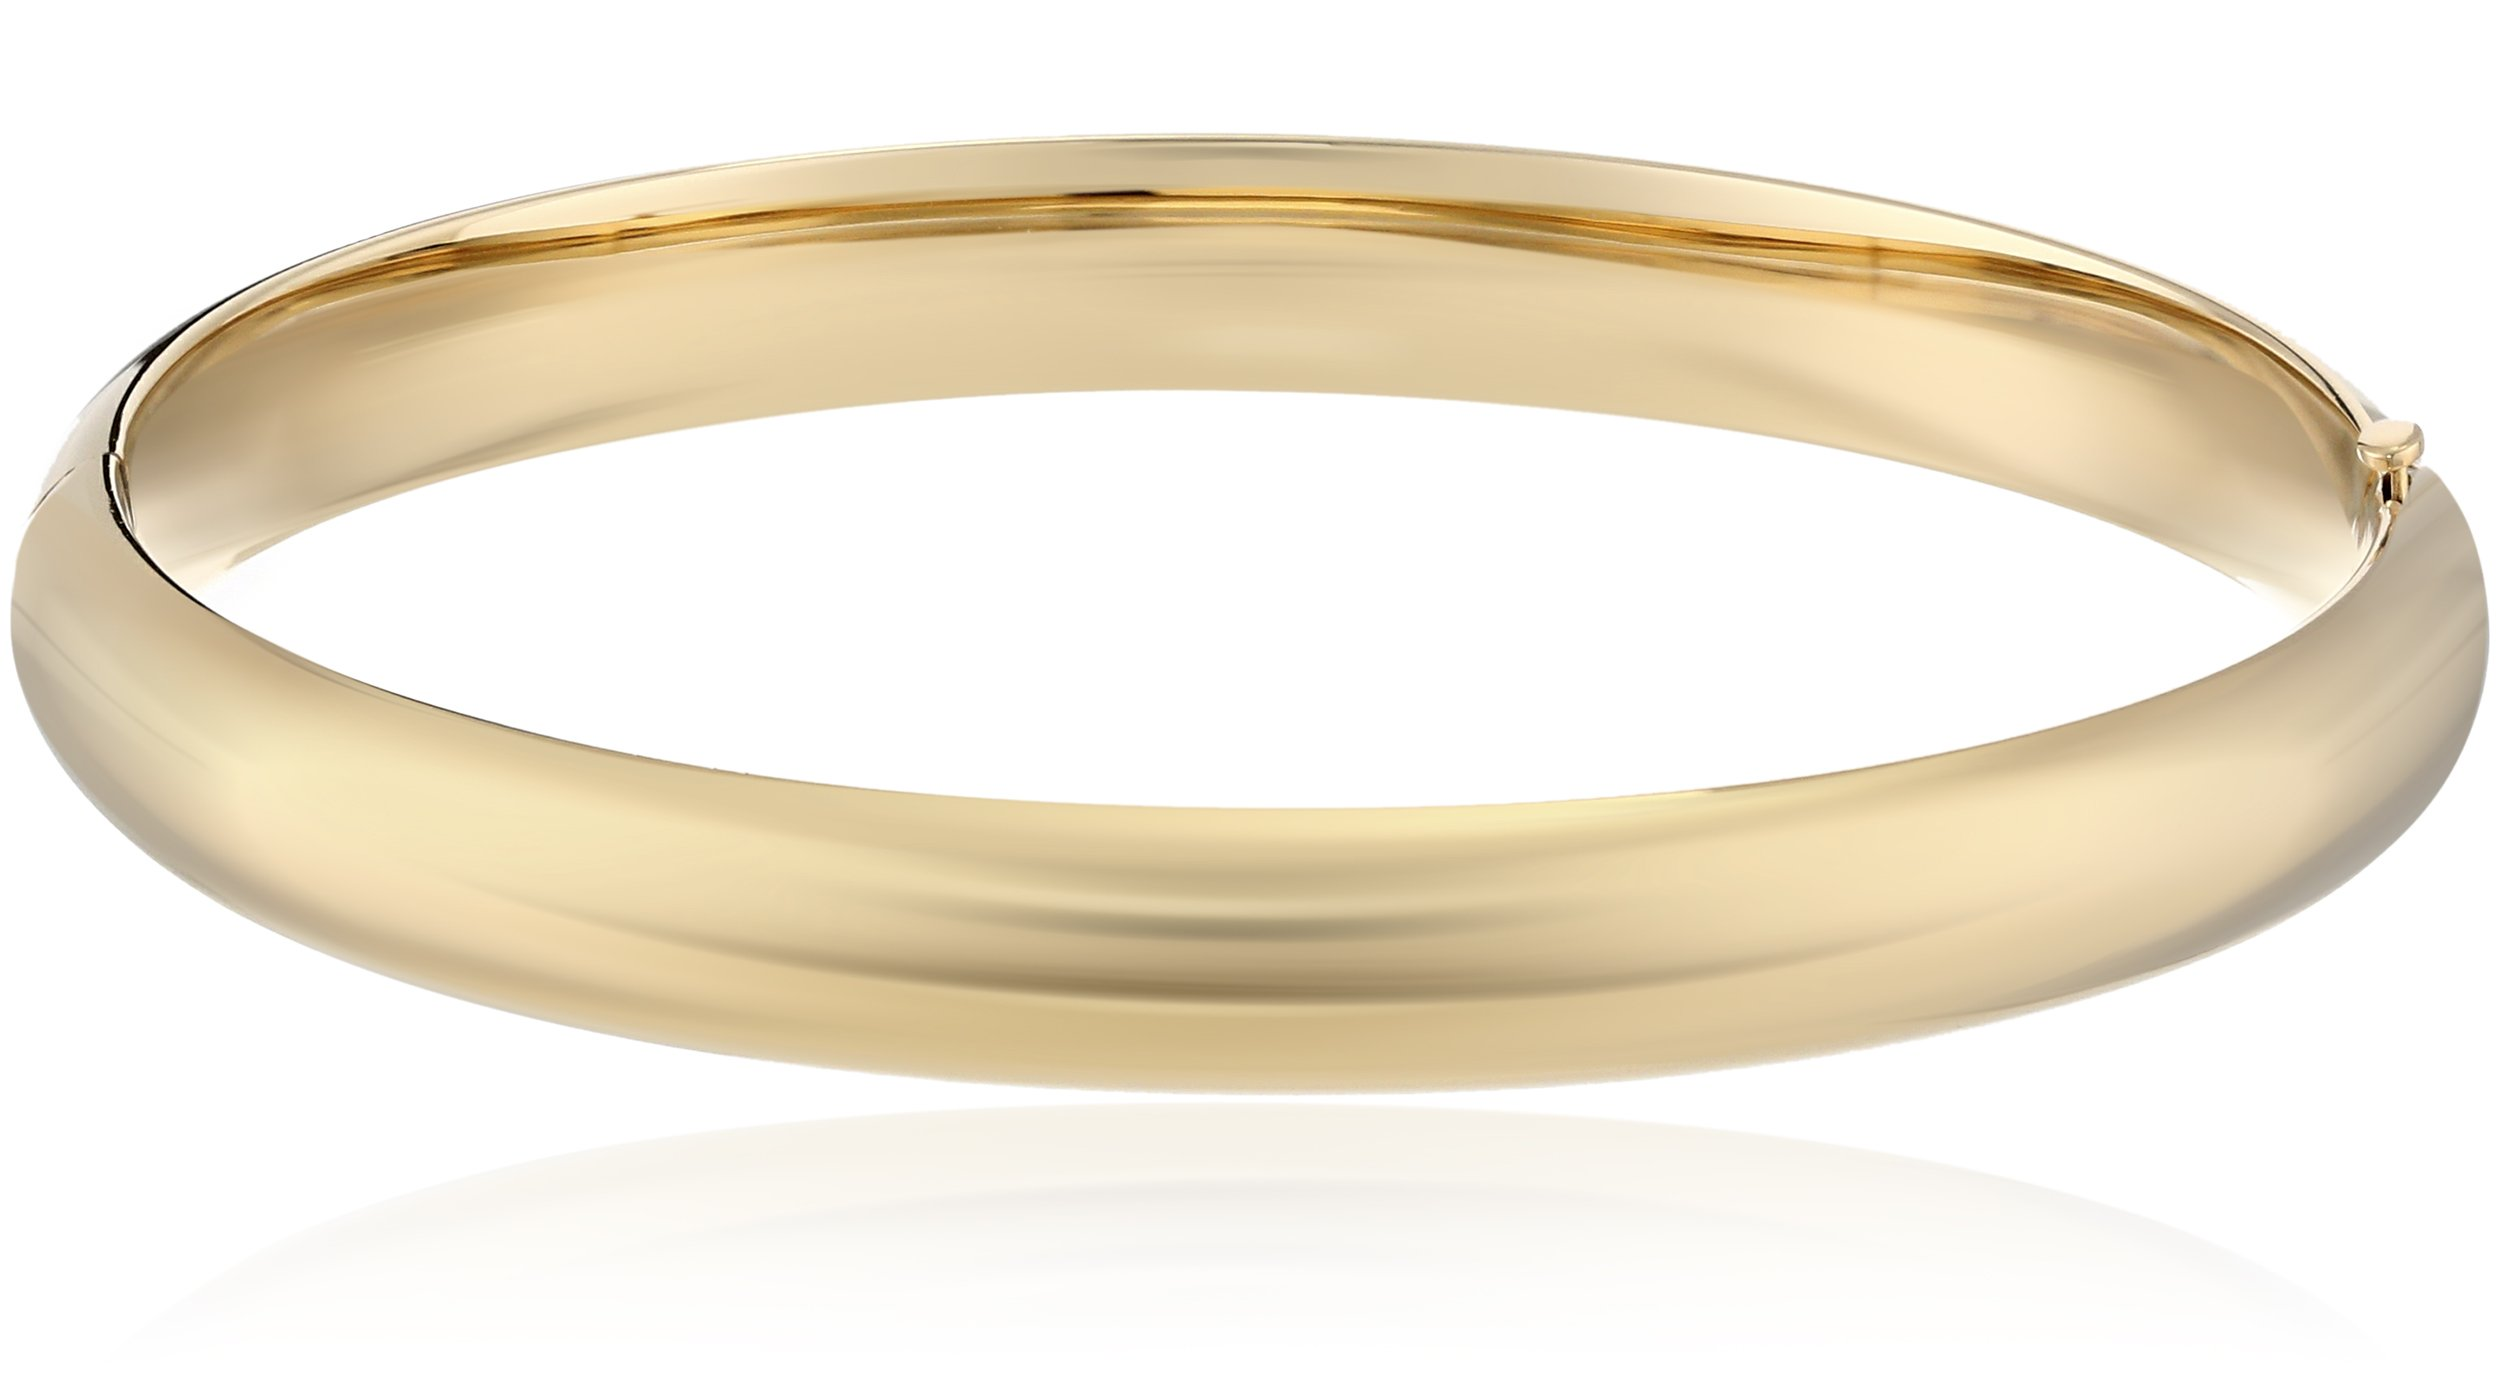 14k Gold-Filled Polished Hinged Yellow Bangle Bracelet, 2.6'' by Amazon Collection